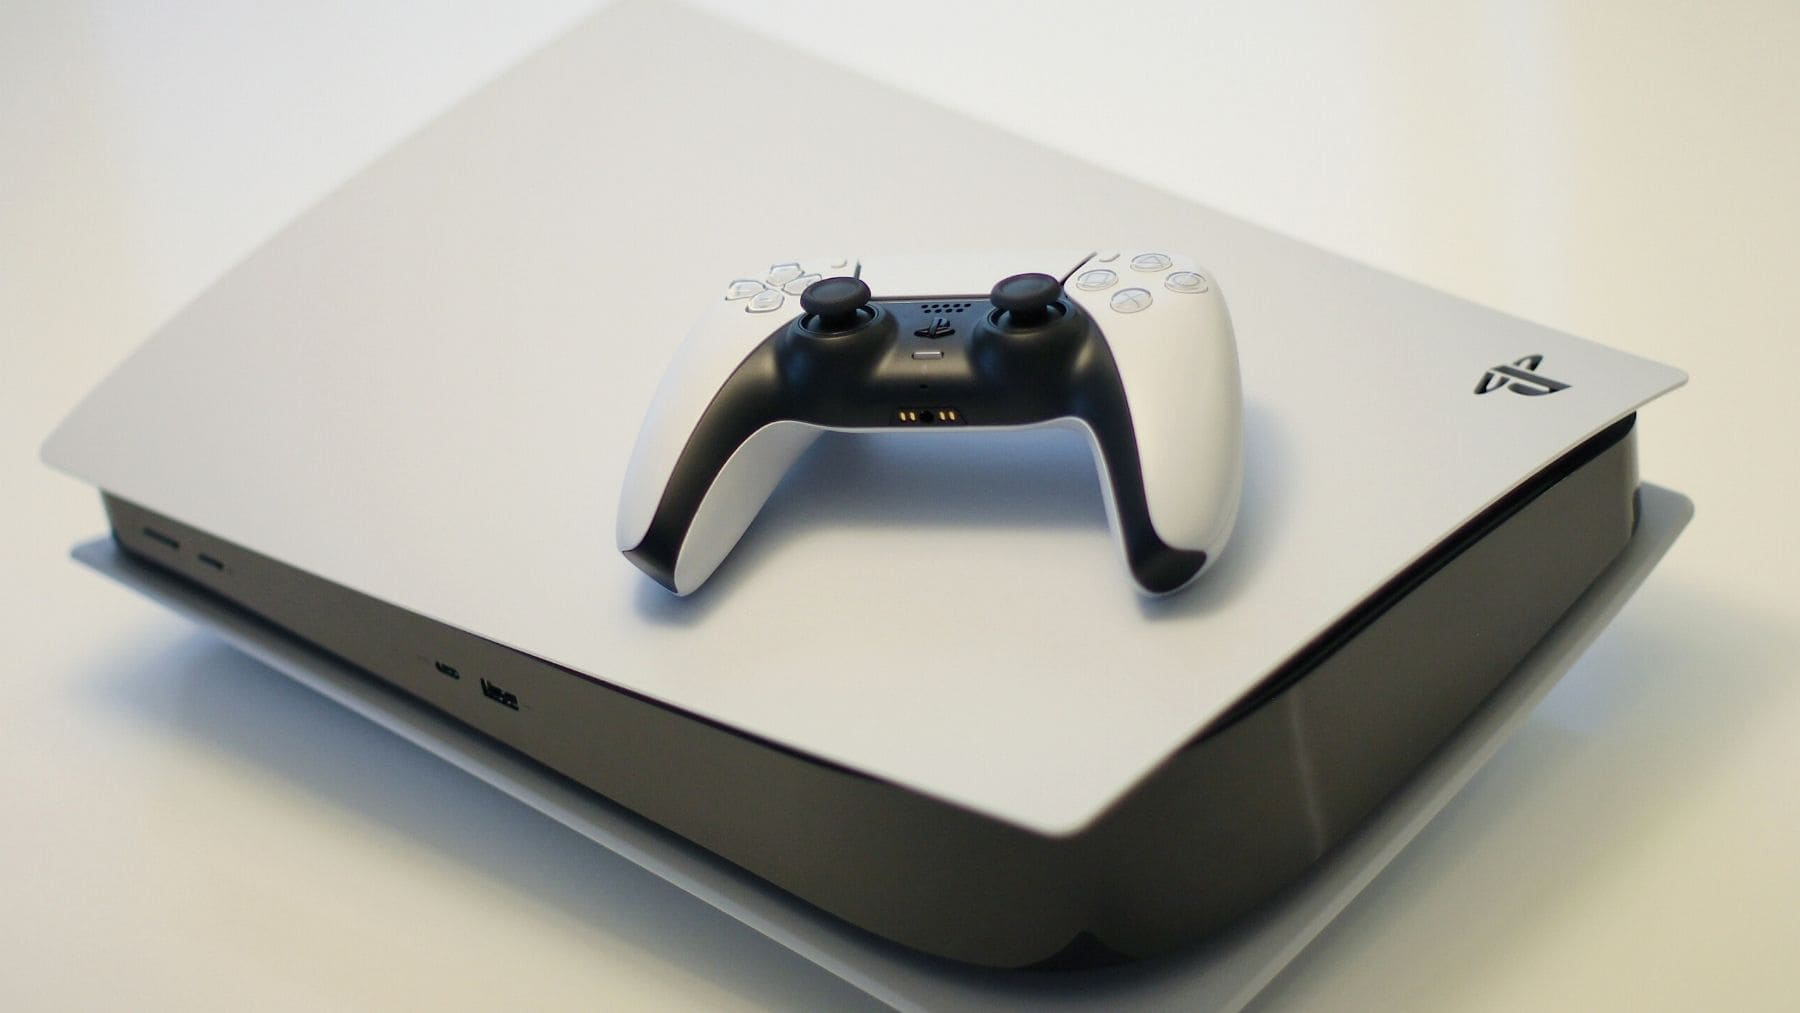 where-to-buy-ps5-in-july:-stores-with-master-of-science-availability